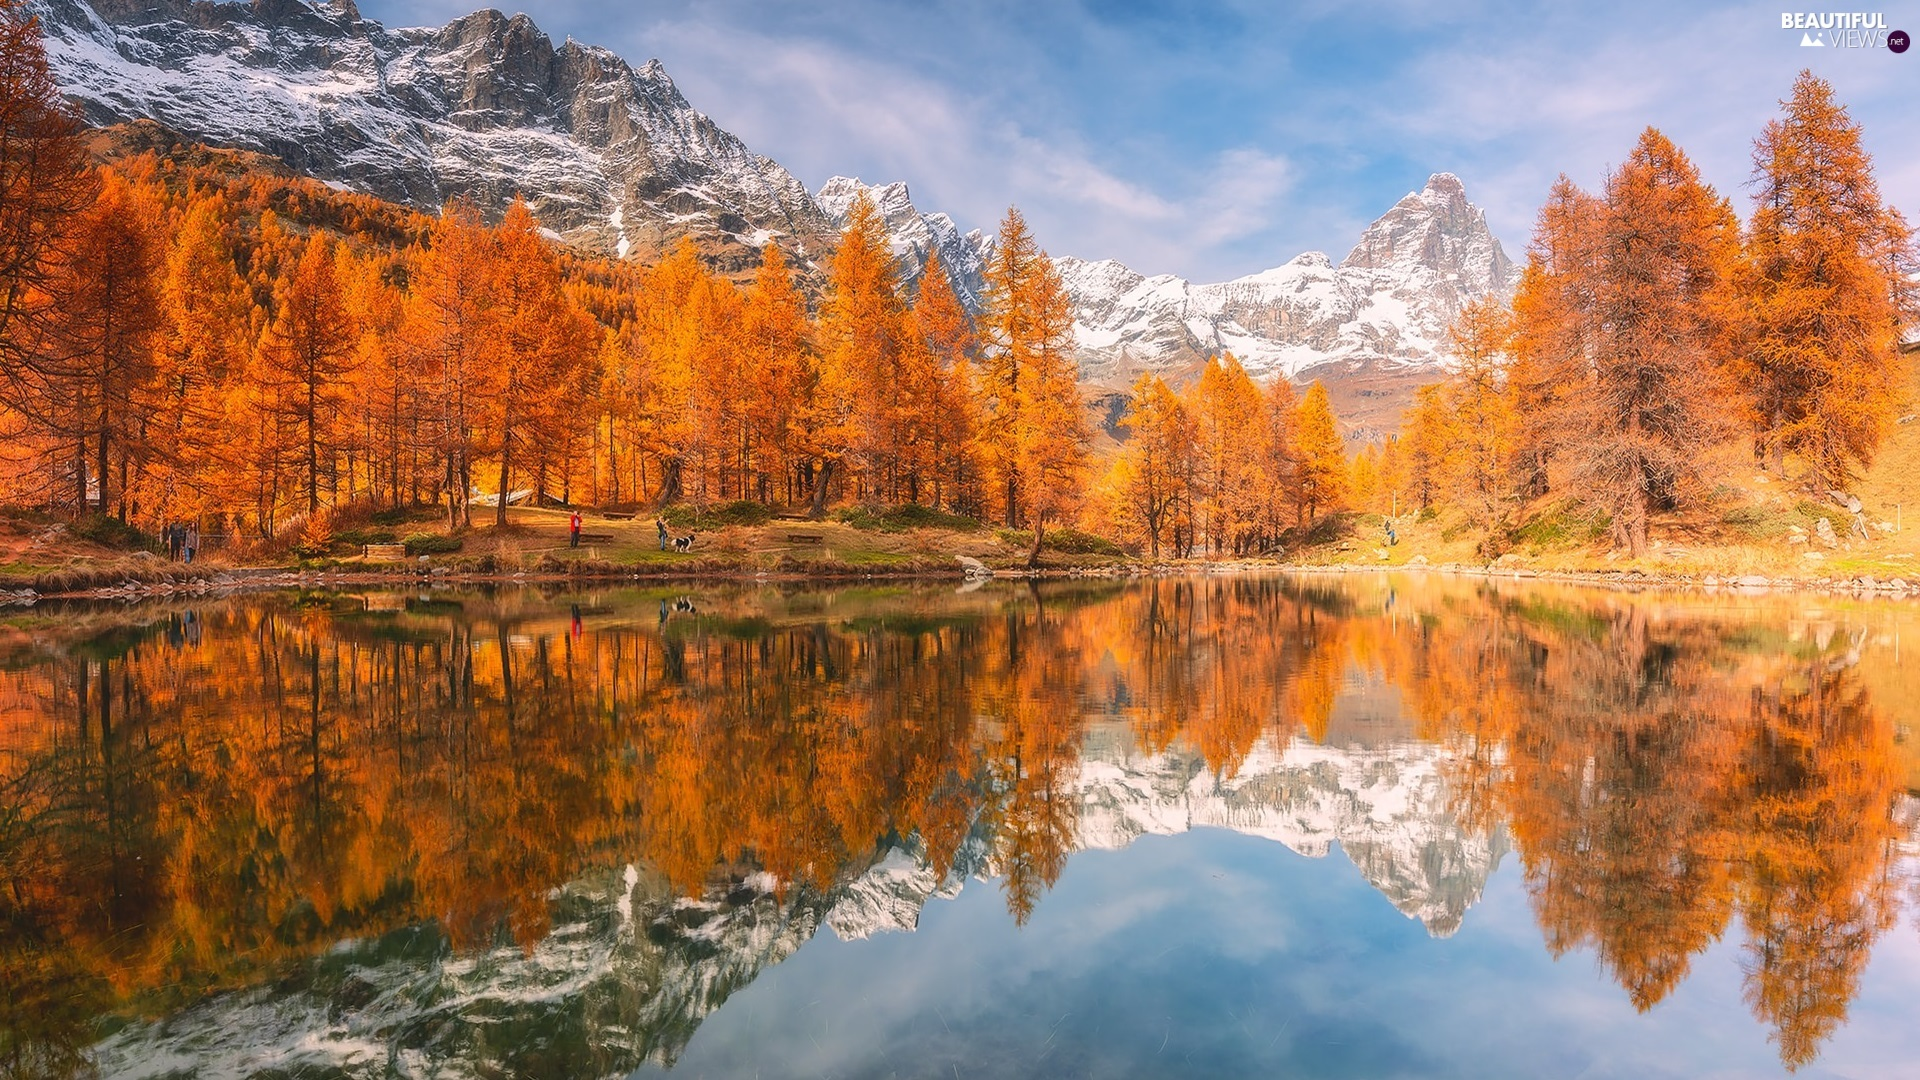 peaks, lake, reflection, trees, autumn, Snowy, Mountains, viewes